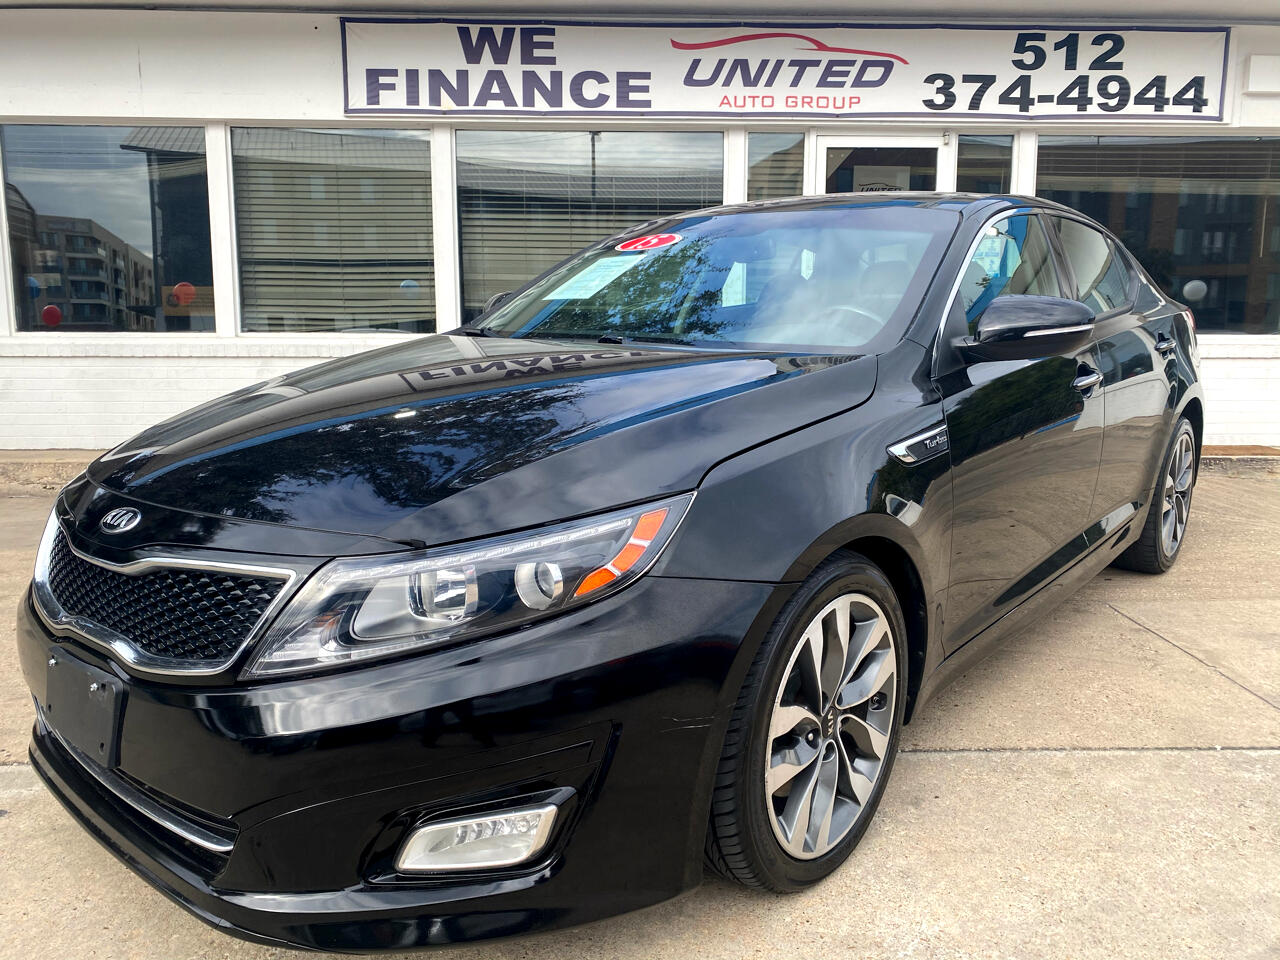 Kia Optima 4dr Sdn SX Turbo 2015